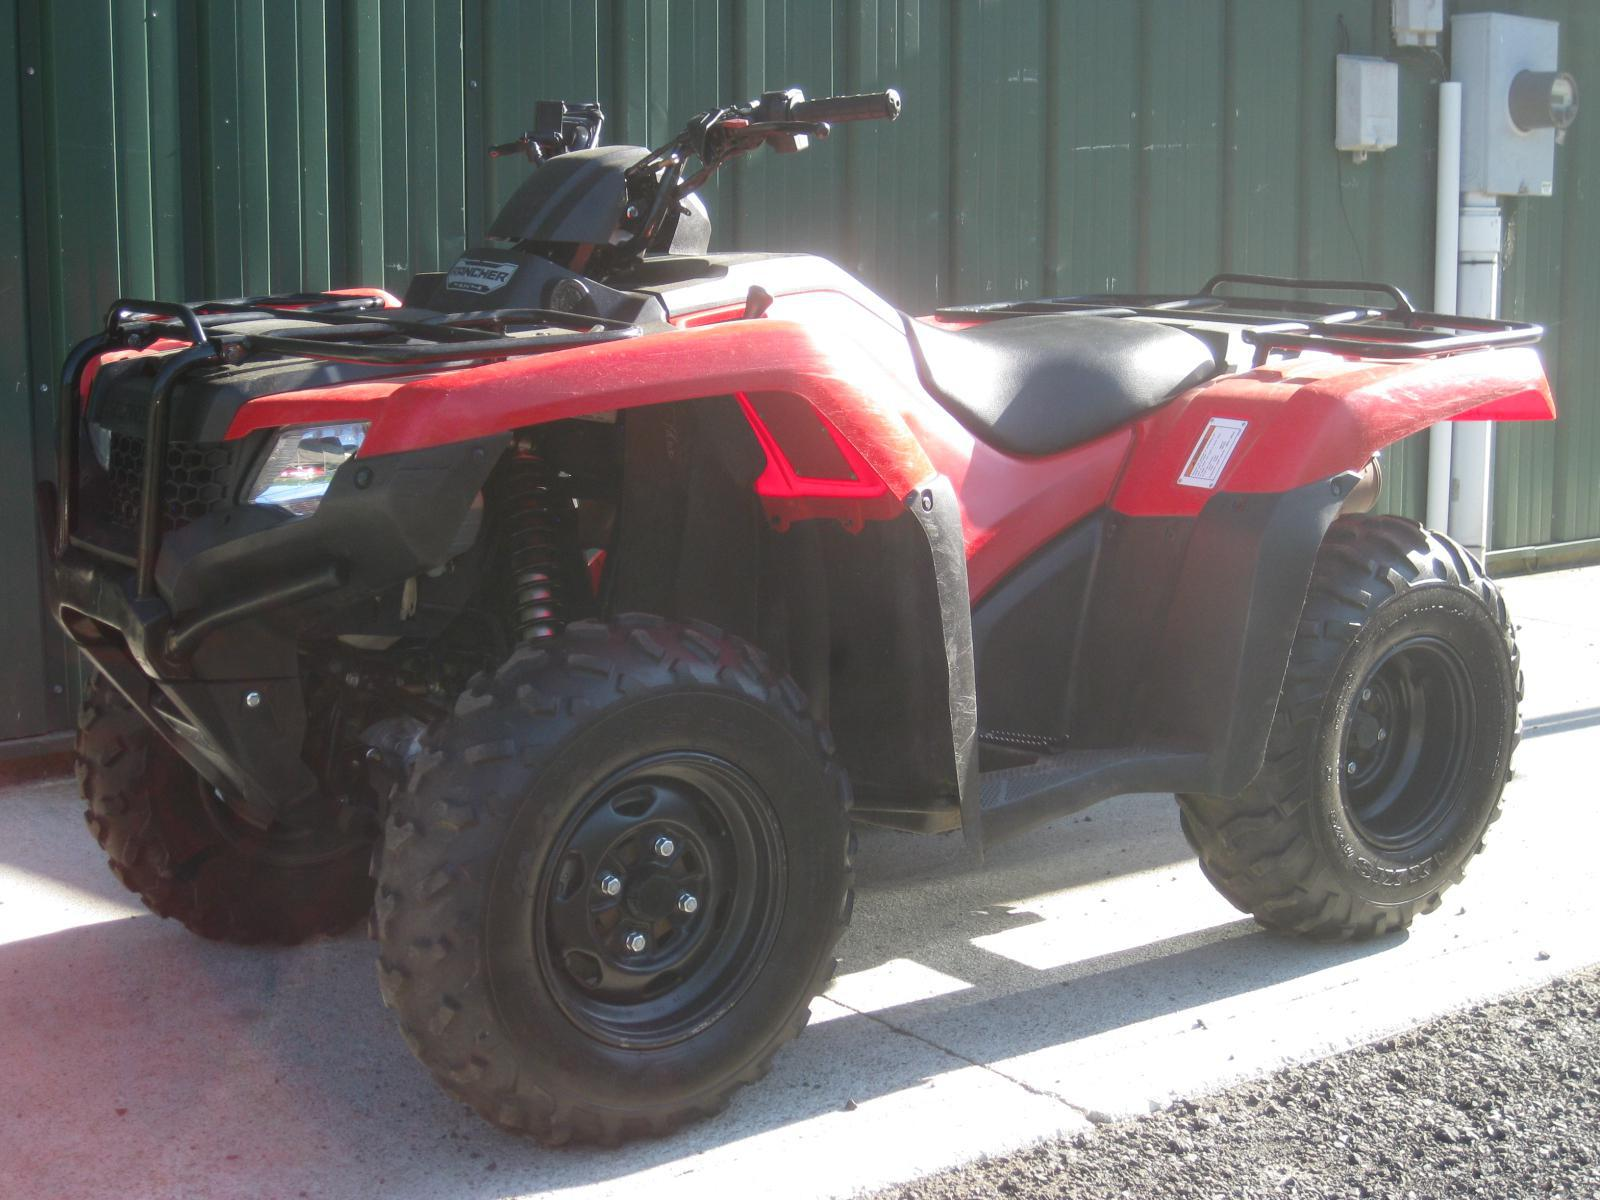 2016 Honda Rancher 420 Stock 4x4 With Bumpers Very Clean Turn Key